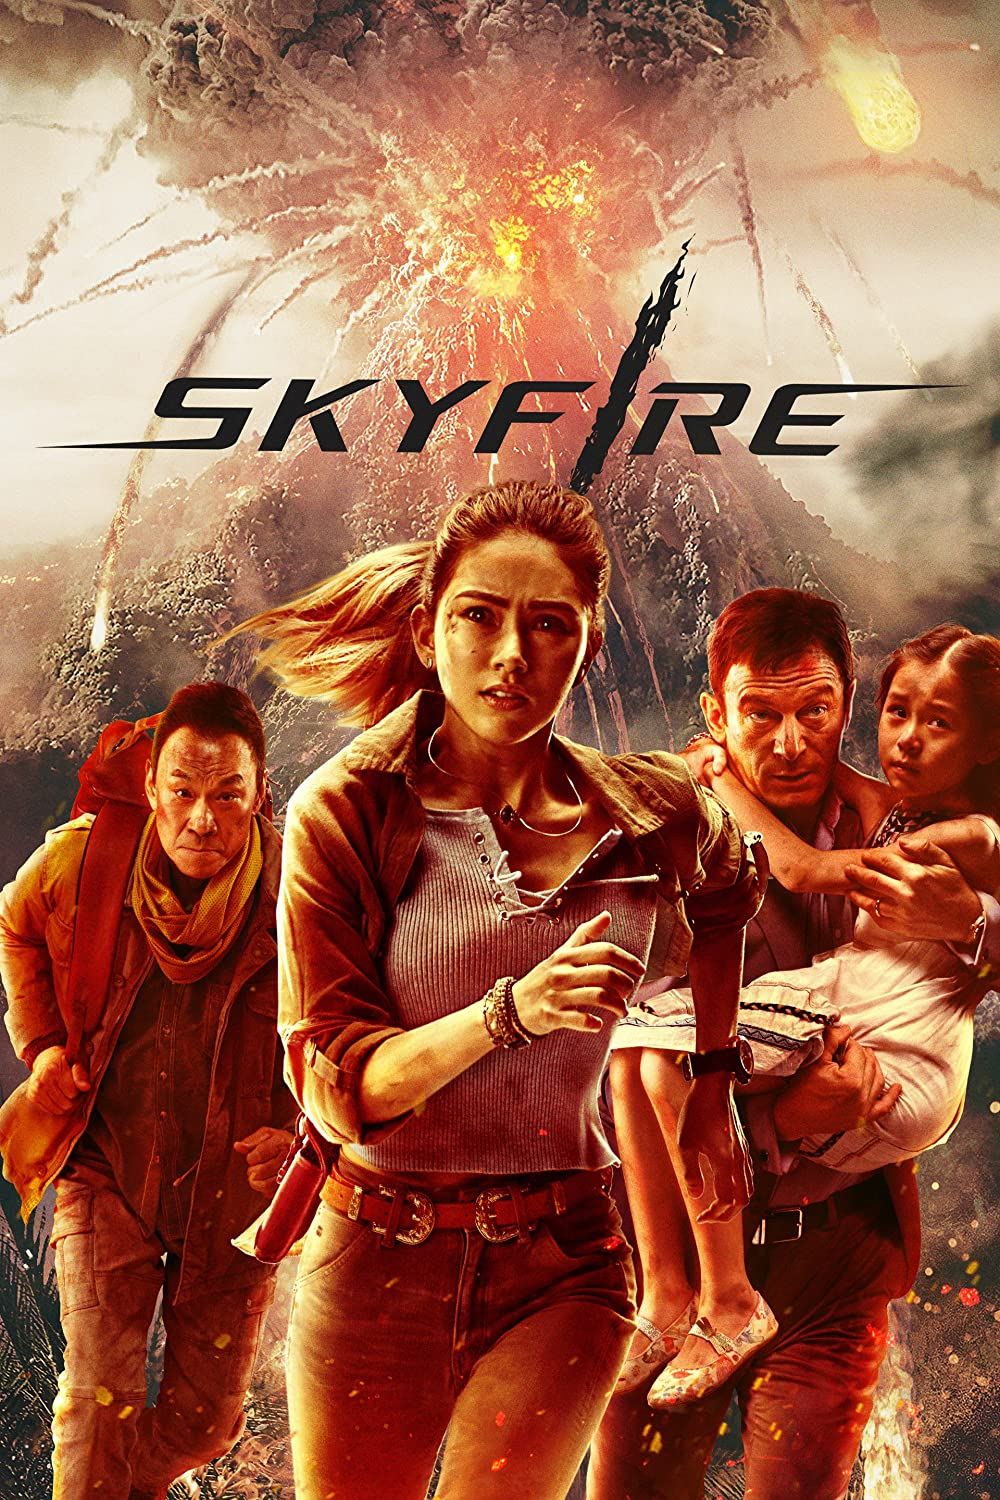 Skyfire (2021) Hindi Dubbed Movie HDRip 720p AAC